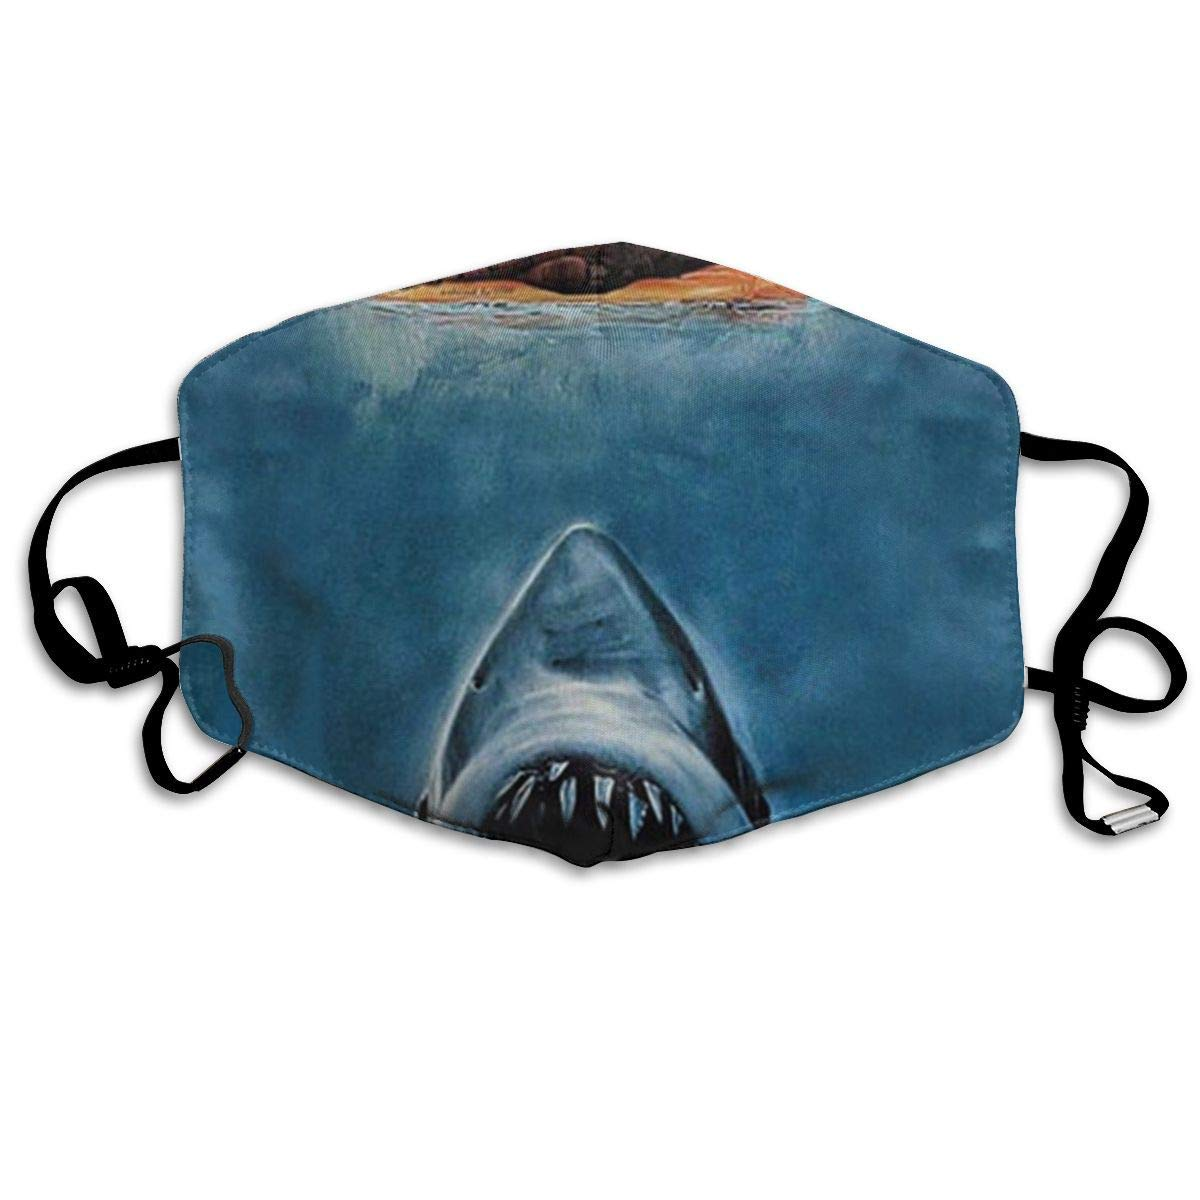 Vbnbvn Boca Máscara,Mascarillas,Máscaras bucales,Anti Dust Mask Shark Anti Pollution Washable Reusable Mouth Masks for Man Woman